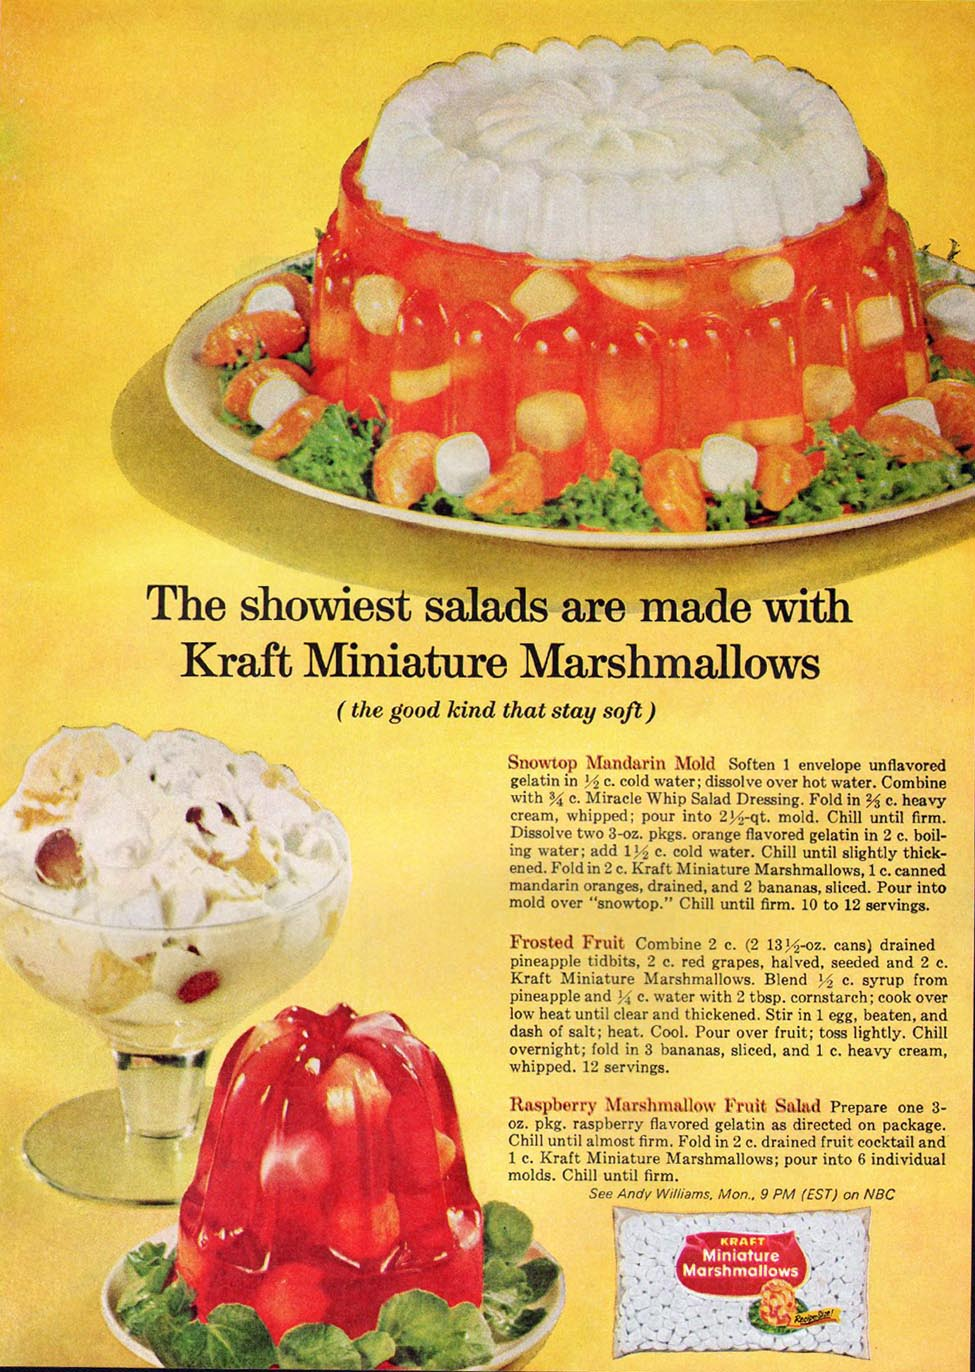 Tiny Marshmallows may make this dish fun but nice people do not entertain with this sort of food. Aspic, absolutely...but tiny marshamallows and canned fruit submerged in cherry gel...forget it.